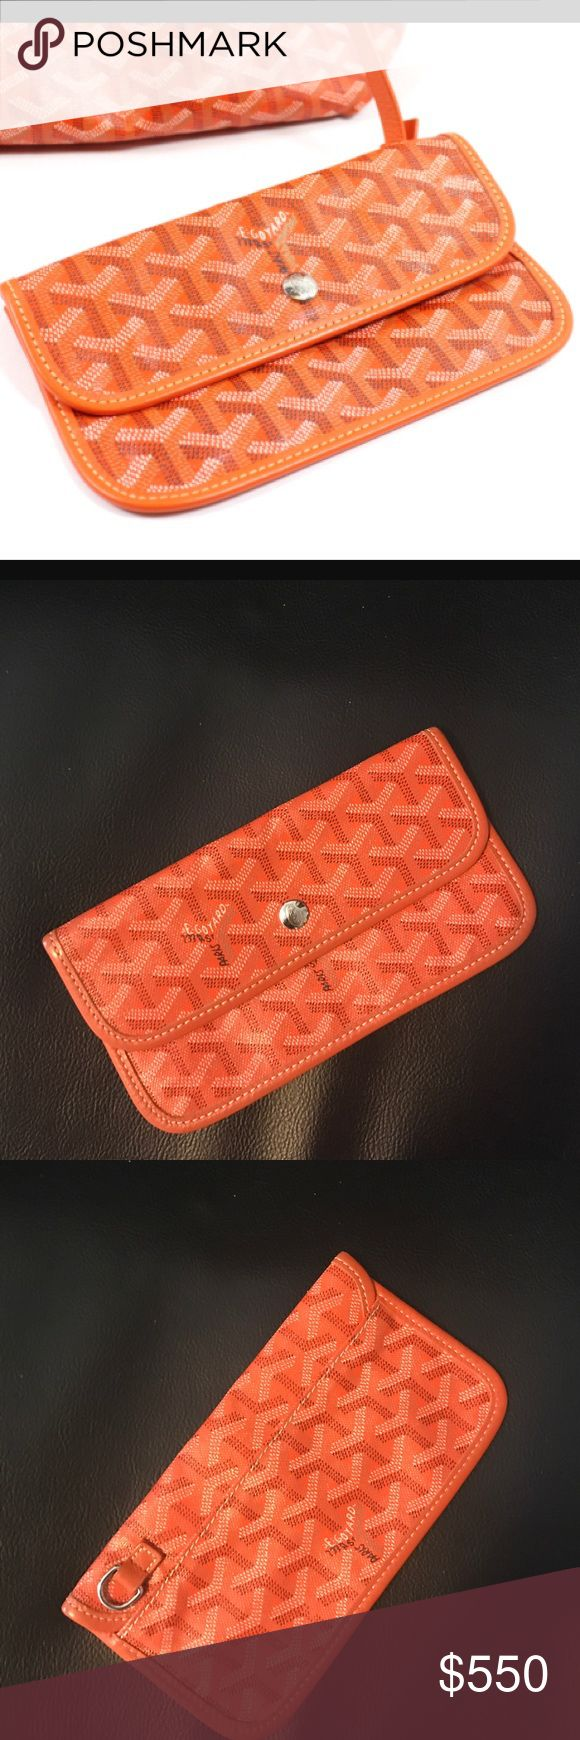 •MUST HAVE 100% AUTHENTIC GOYARD SIGNATURE POUCH• •MUST HAVE 100% AUTHENTIC GOYARD SIGNATURE POUCH- THE CODE IS ON THE PURSE POSTED SO THERE IS NOT ONE ON THE POUCH. WORN 2x LIKE NEW CONDITION. IF YOU MAKE A HIGH ENOUGH OFFER IT WILL GO THROUGH POSH AUTH SERVICES. GREAT SIZE FITS IPHONE 7+. PURCHASED IN BLOOMINGDALES. •••PRICED TO SELL SAME DAY, OFFERS WELCOME THROUGH THE OFFER OPTION, NO TRADES OR HOLDS••• Goyard Bags Wallets